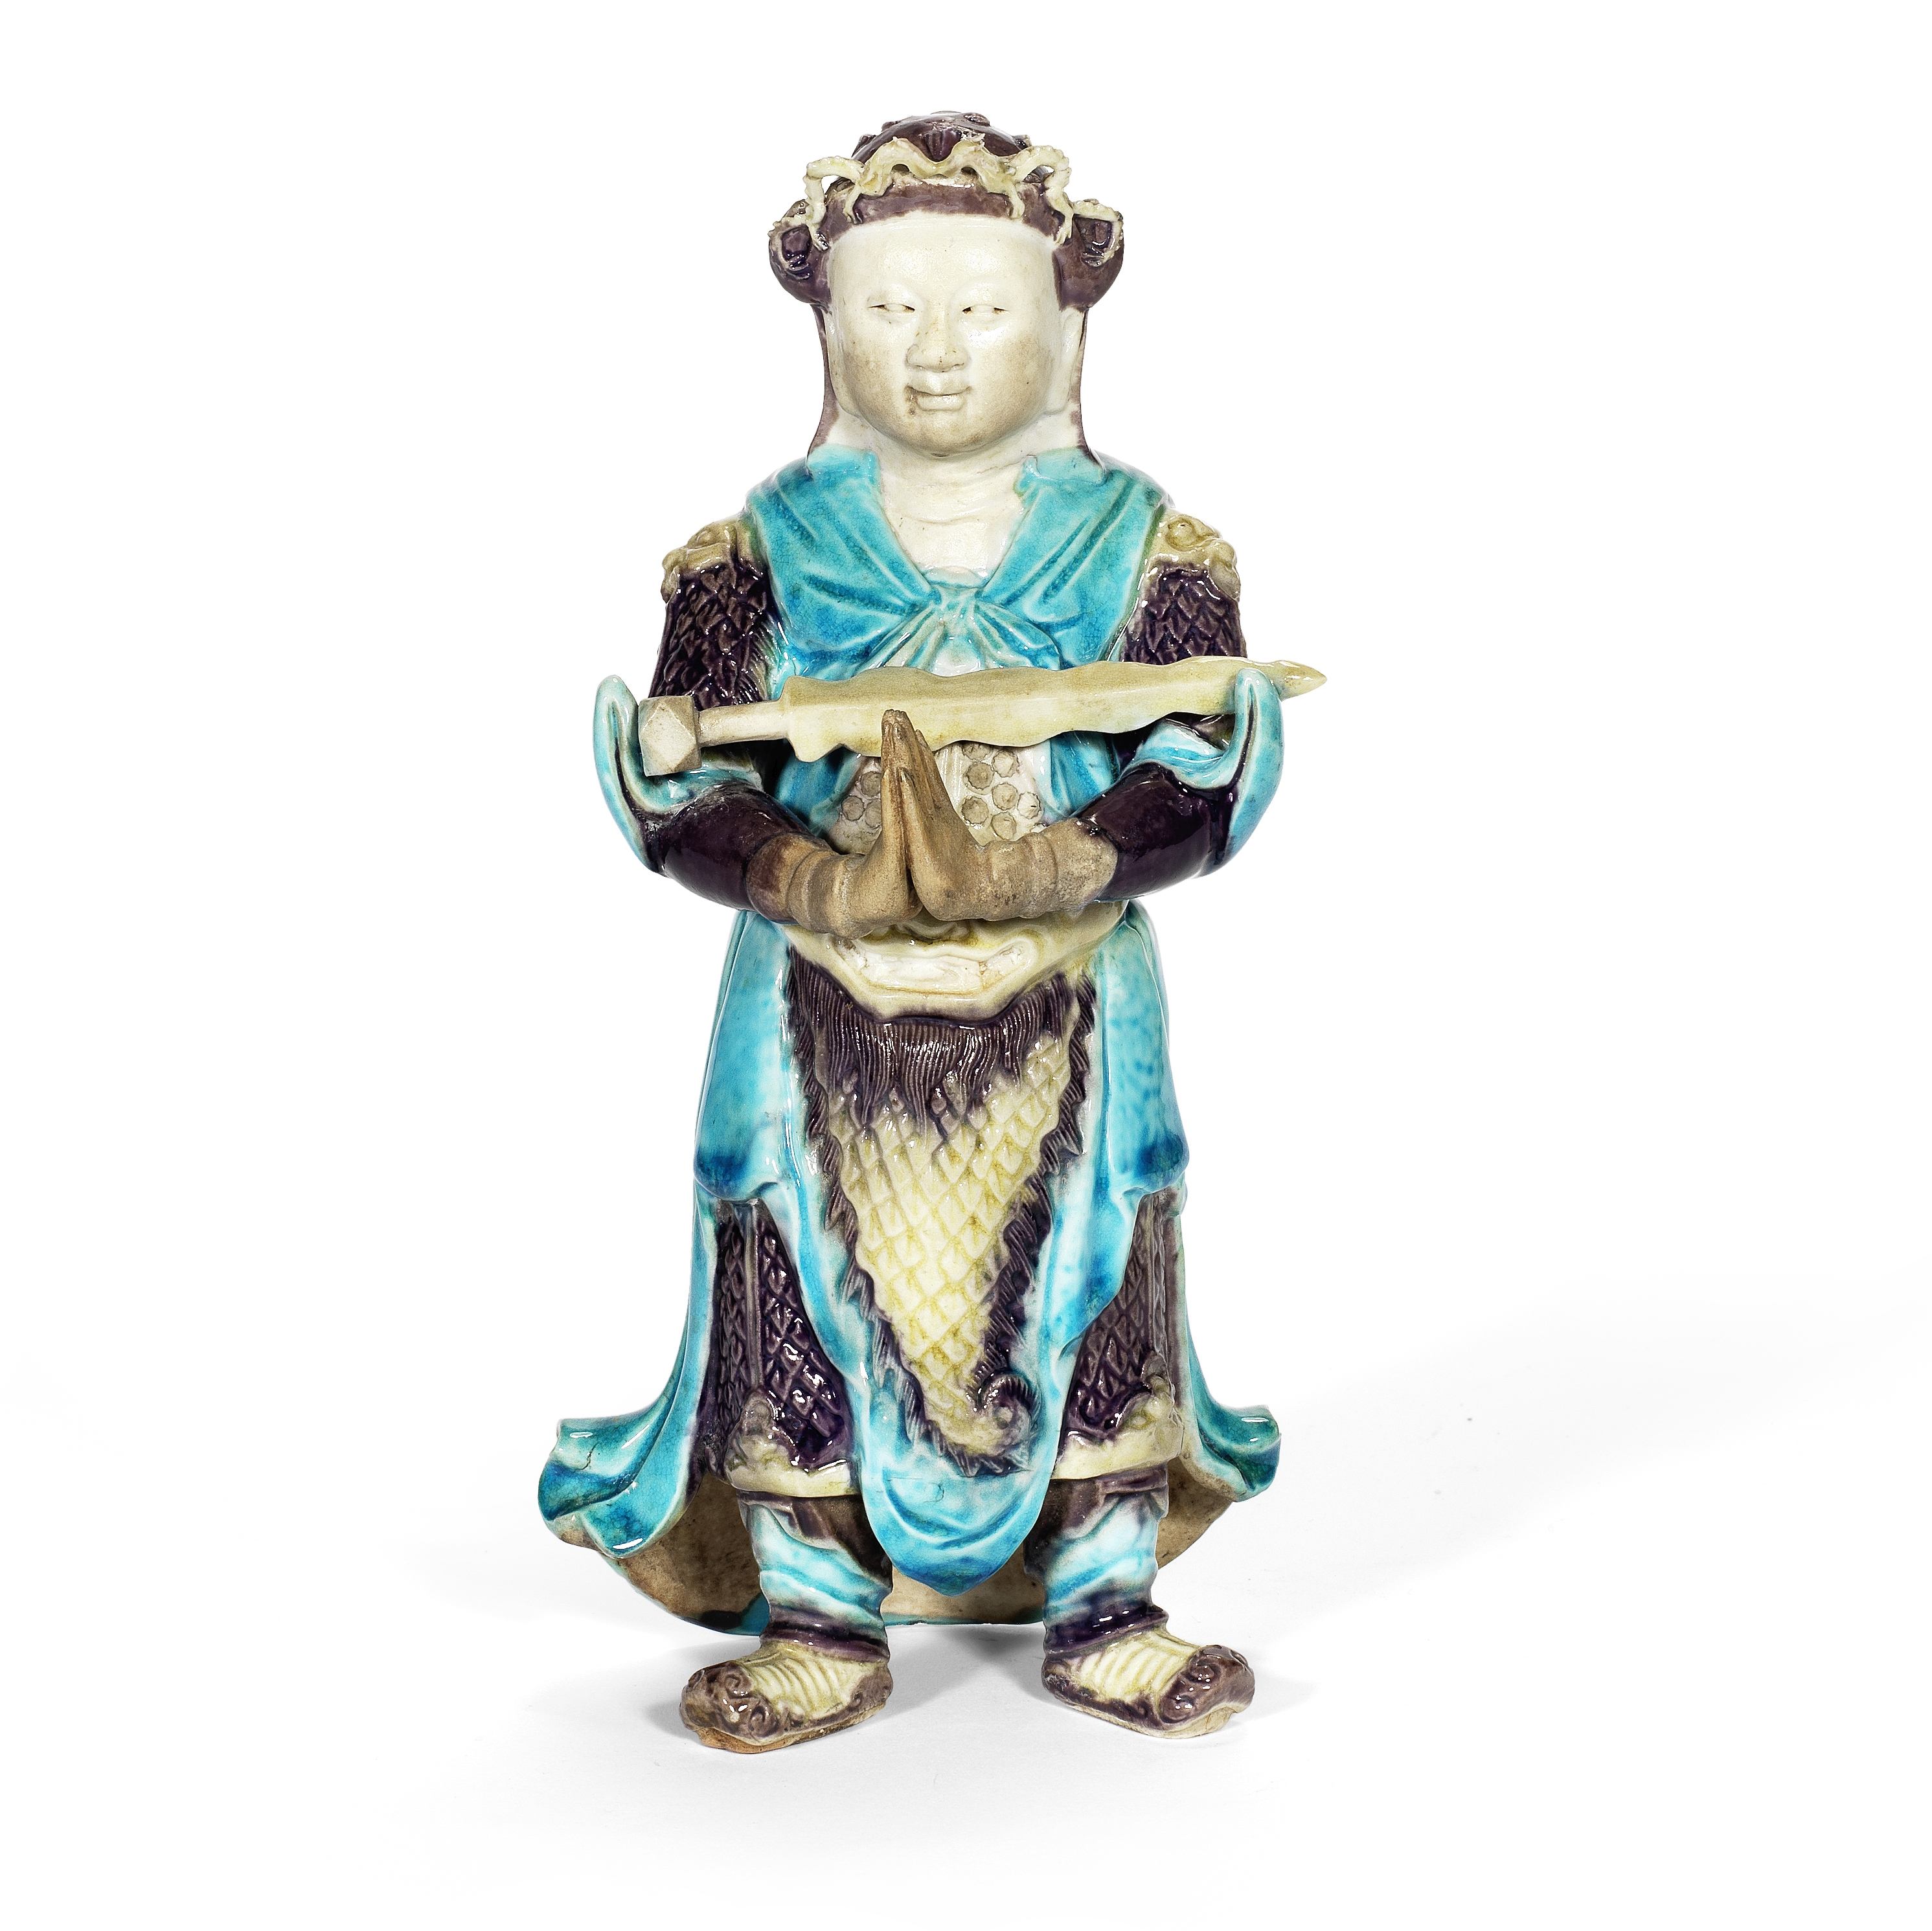 A FAHUA-GLAZED BISCUIT FIGURE OF WEITUO Kangxi